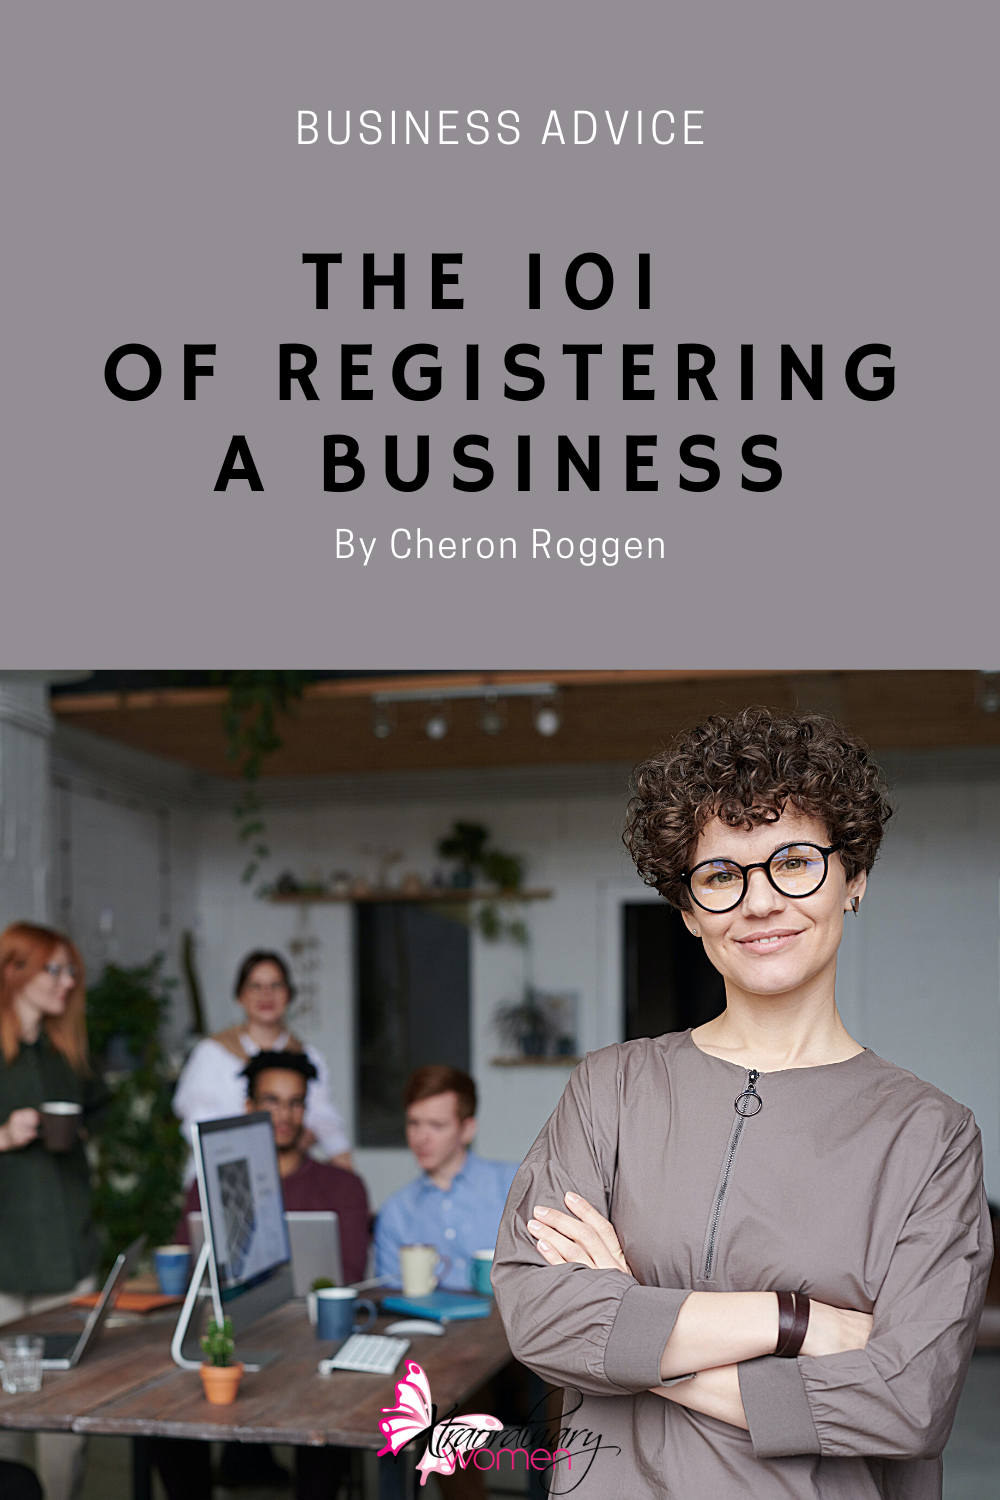 The 101 On Registering A Business by Cheron Roggen